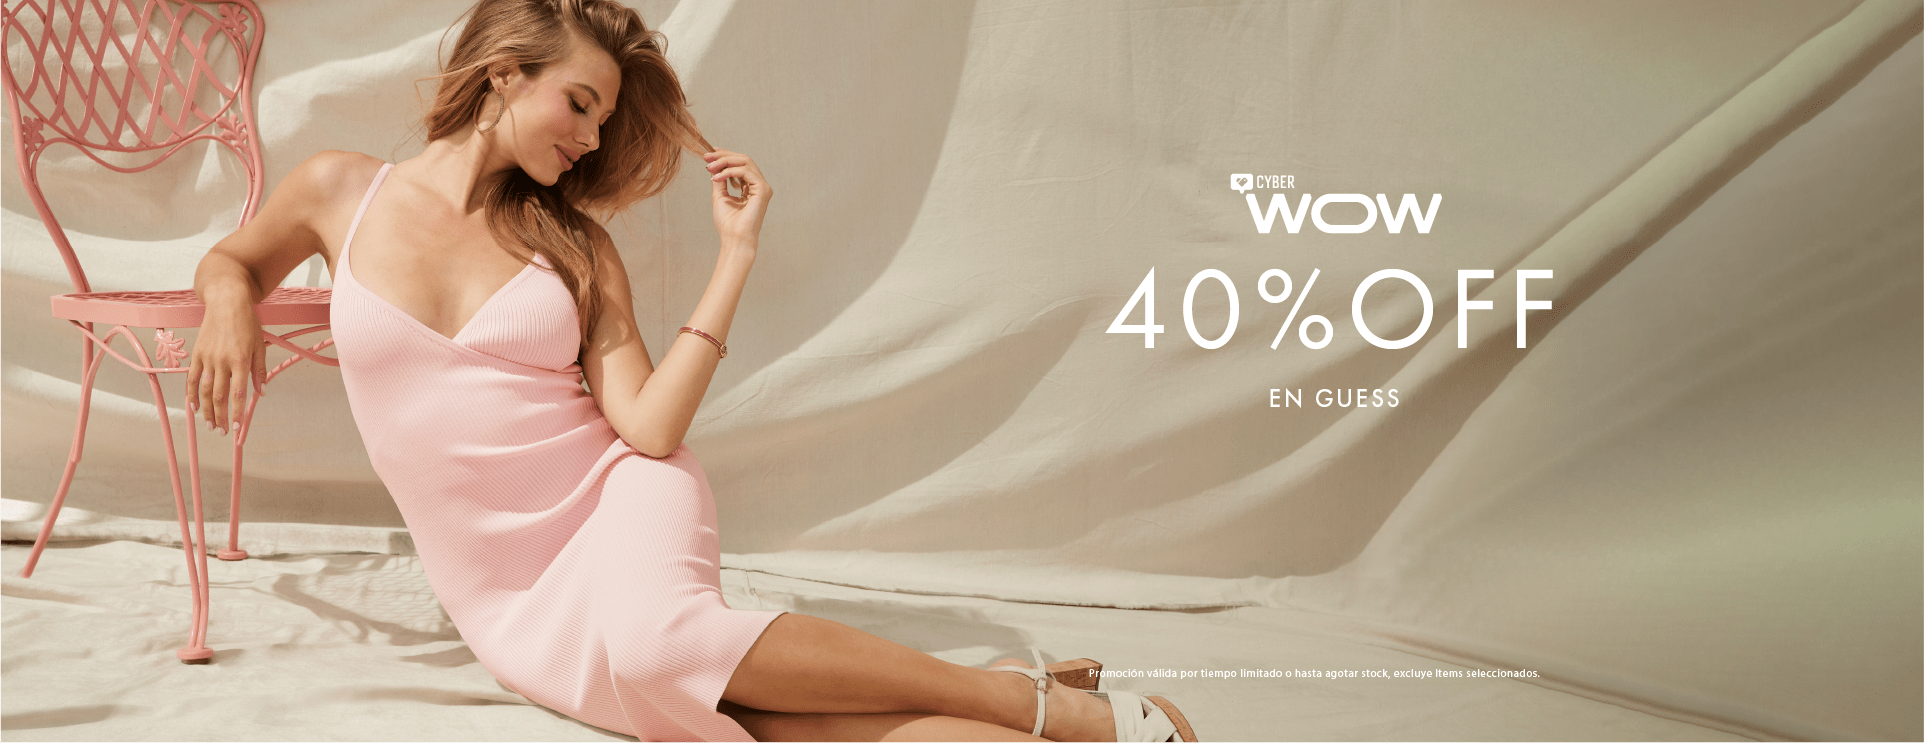 cyber wow 40% off